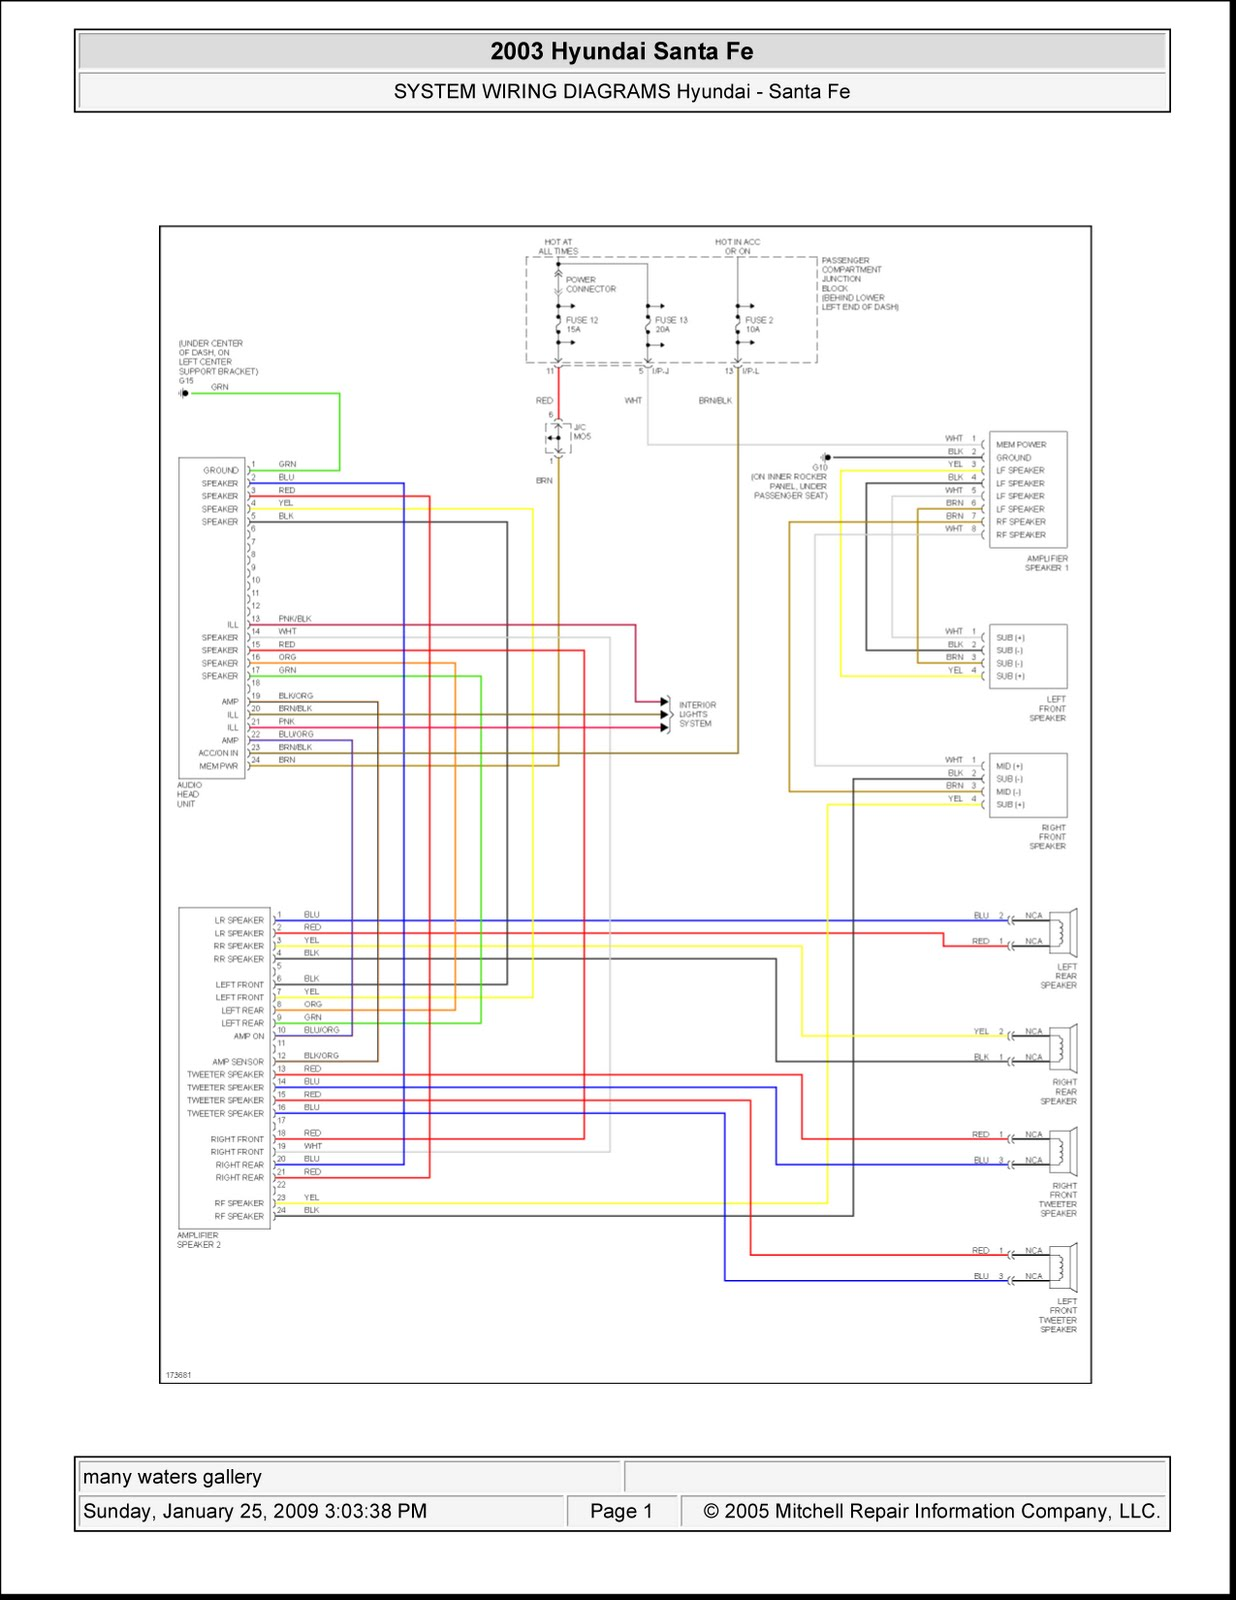 2001 Impala Radio Wiring Diagram On Popscreen Libraries 2003 For Start System Libraryhyundai Santa Fe Monsoon